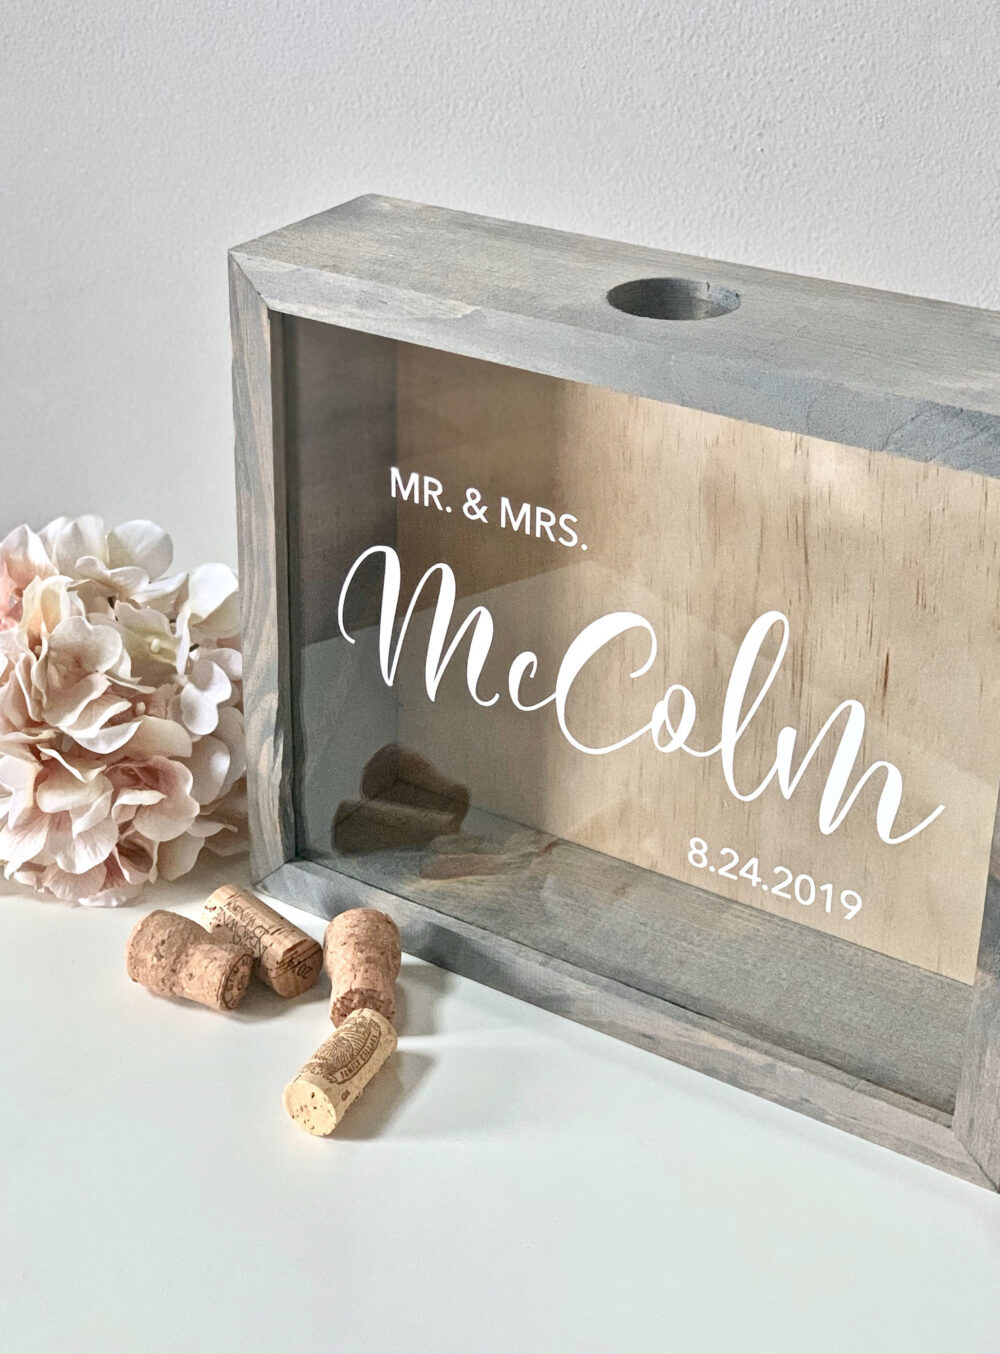 Guest Book Alternative | Sign A Cork Wood Memory Box Wine Holder Shadow Wedding Display Case Small, Medium & Large Sizes